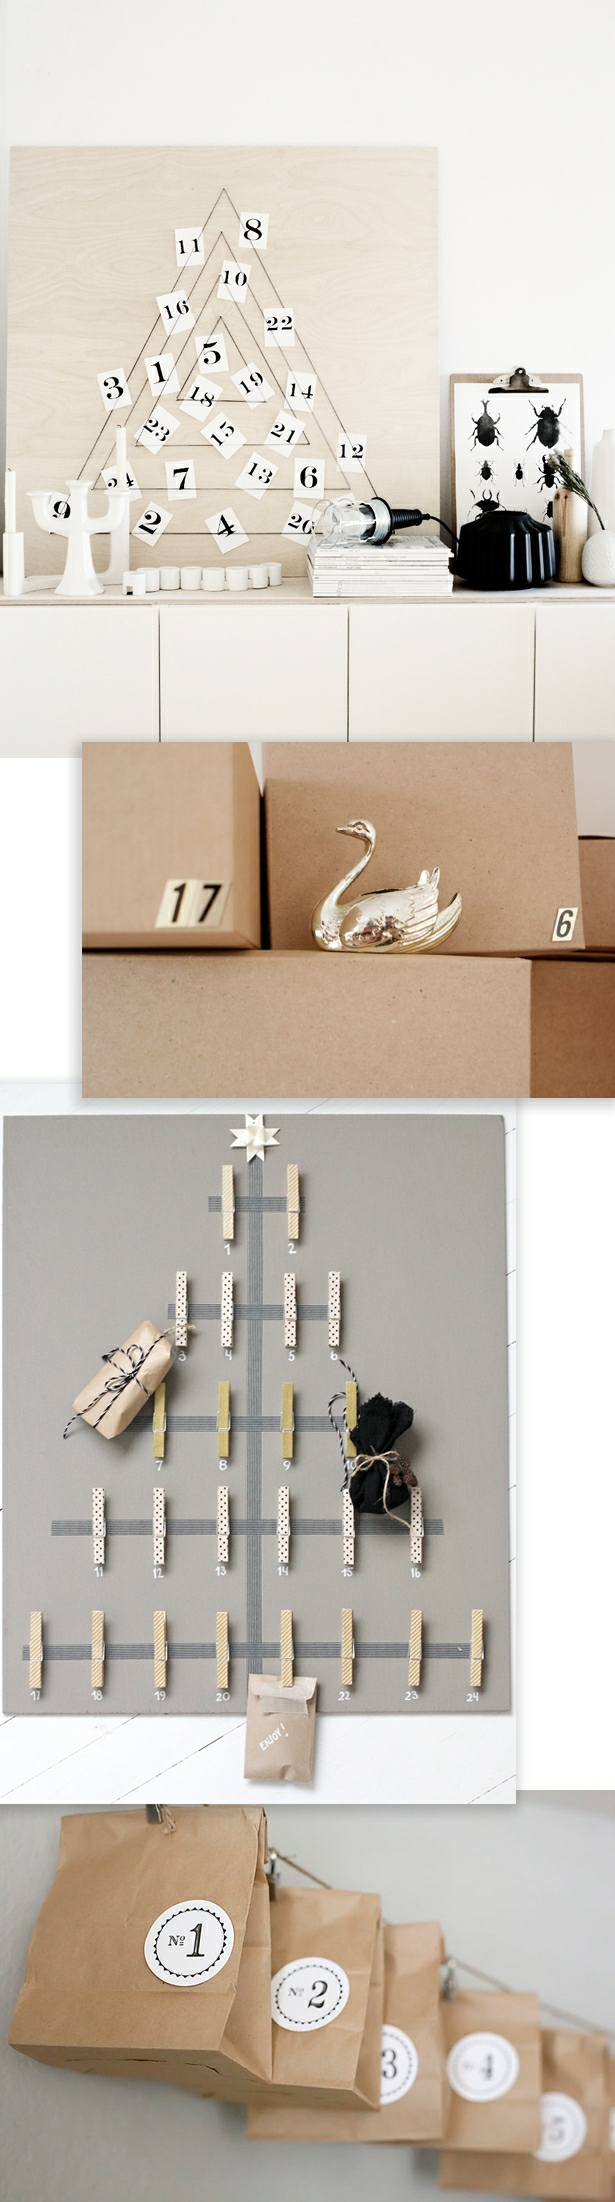 Advent Calendar DIY Round-Up